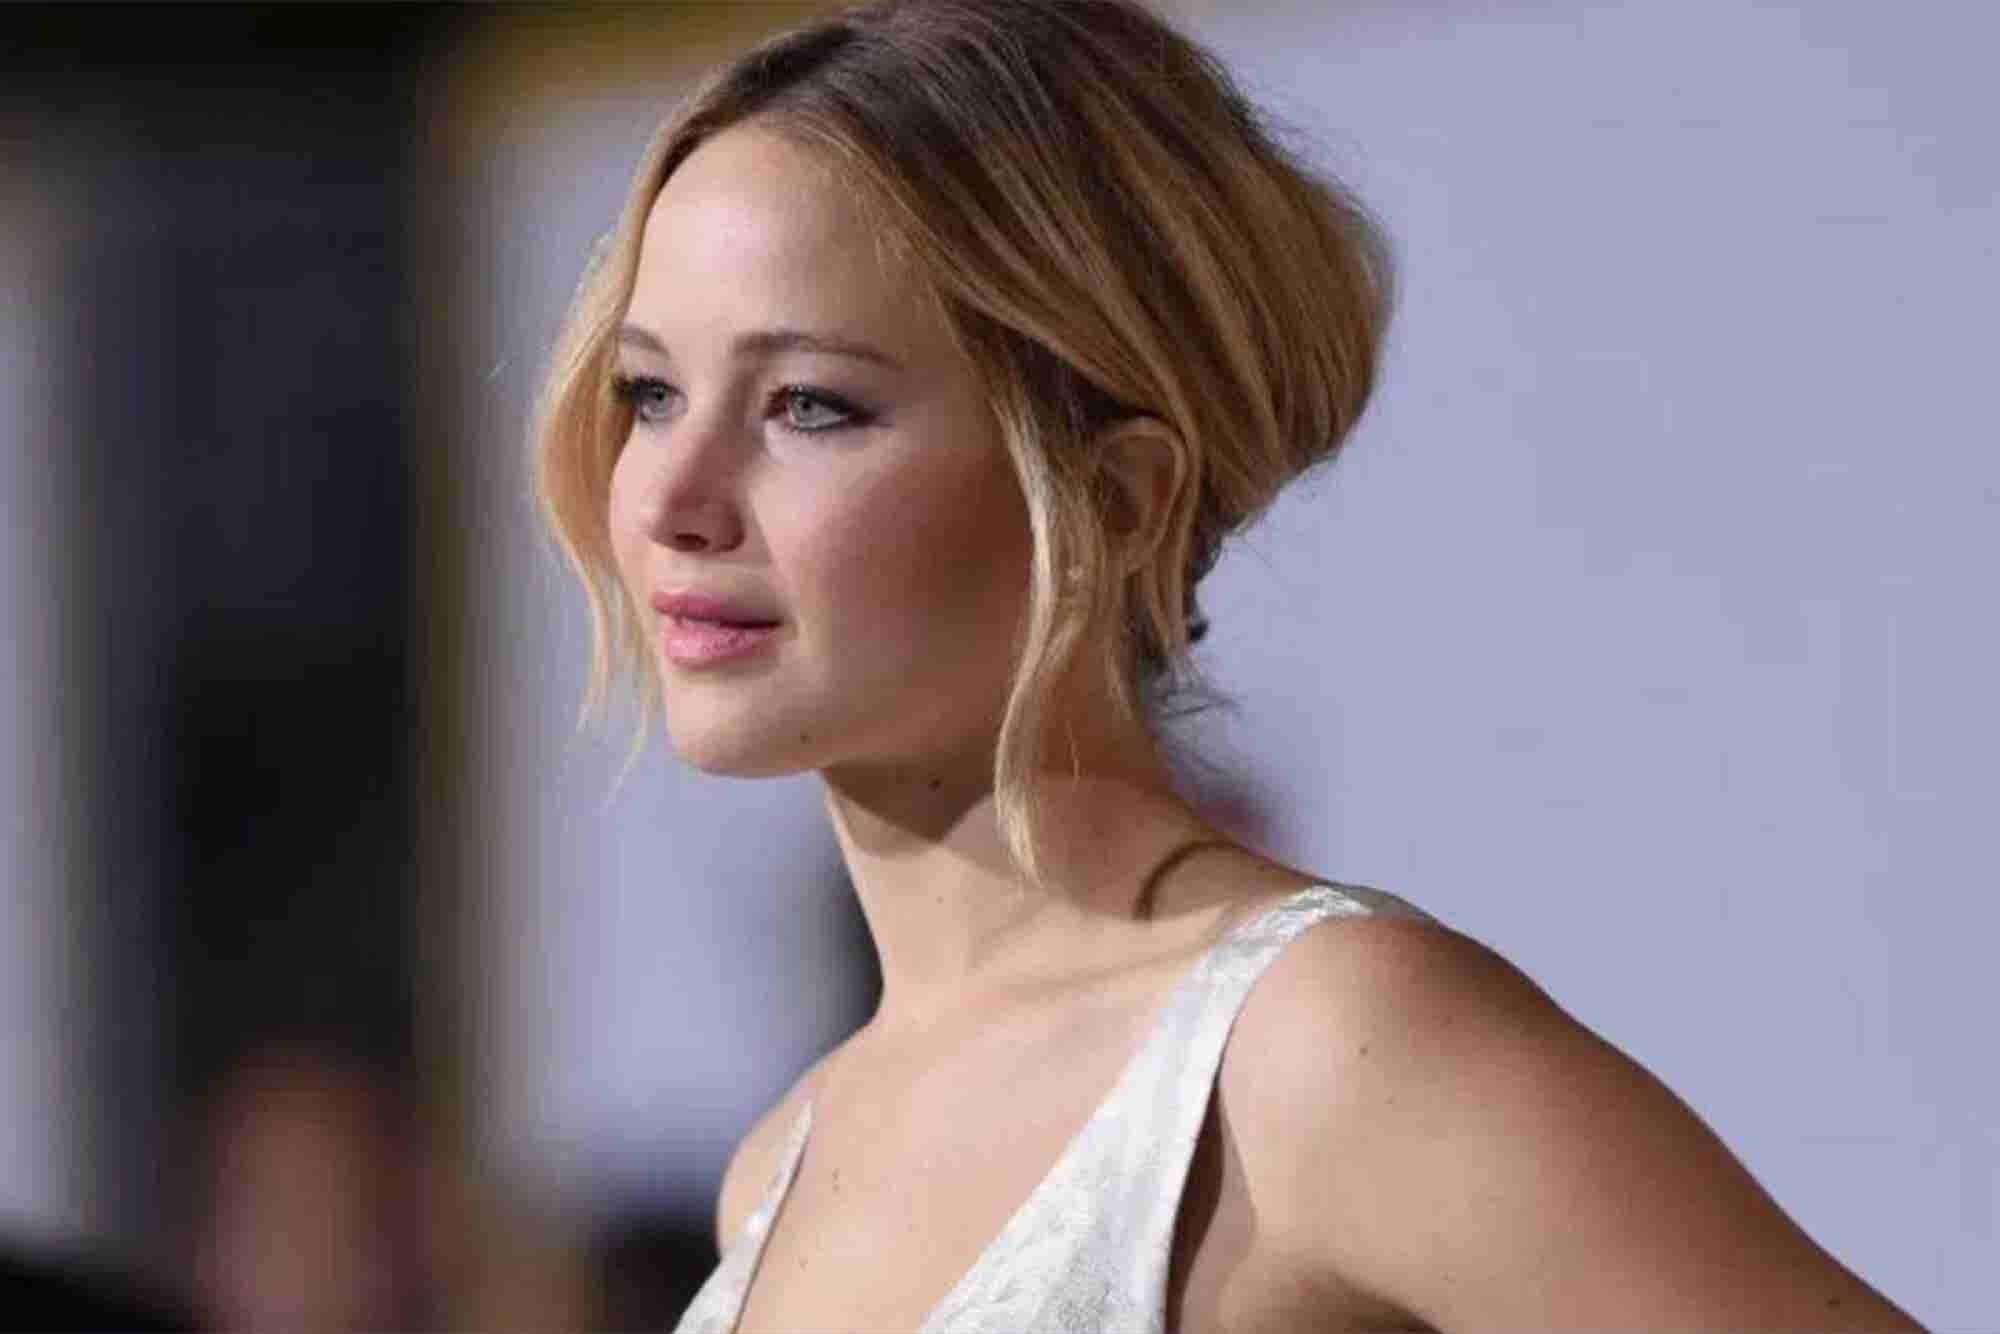 Hacker Who Stole Nude Jennifer Lawrence Selfies Pleads Guilty